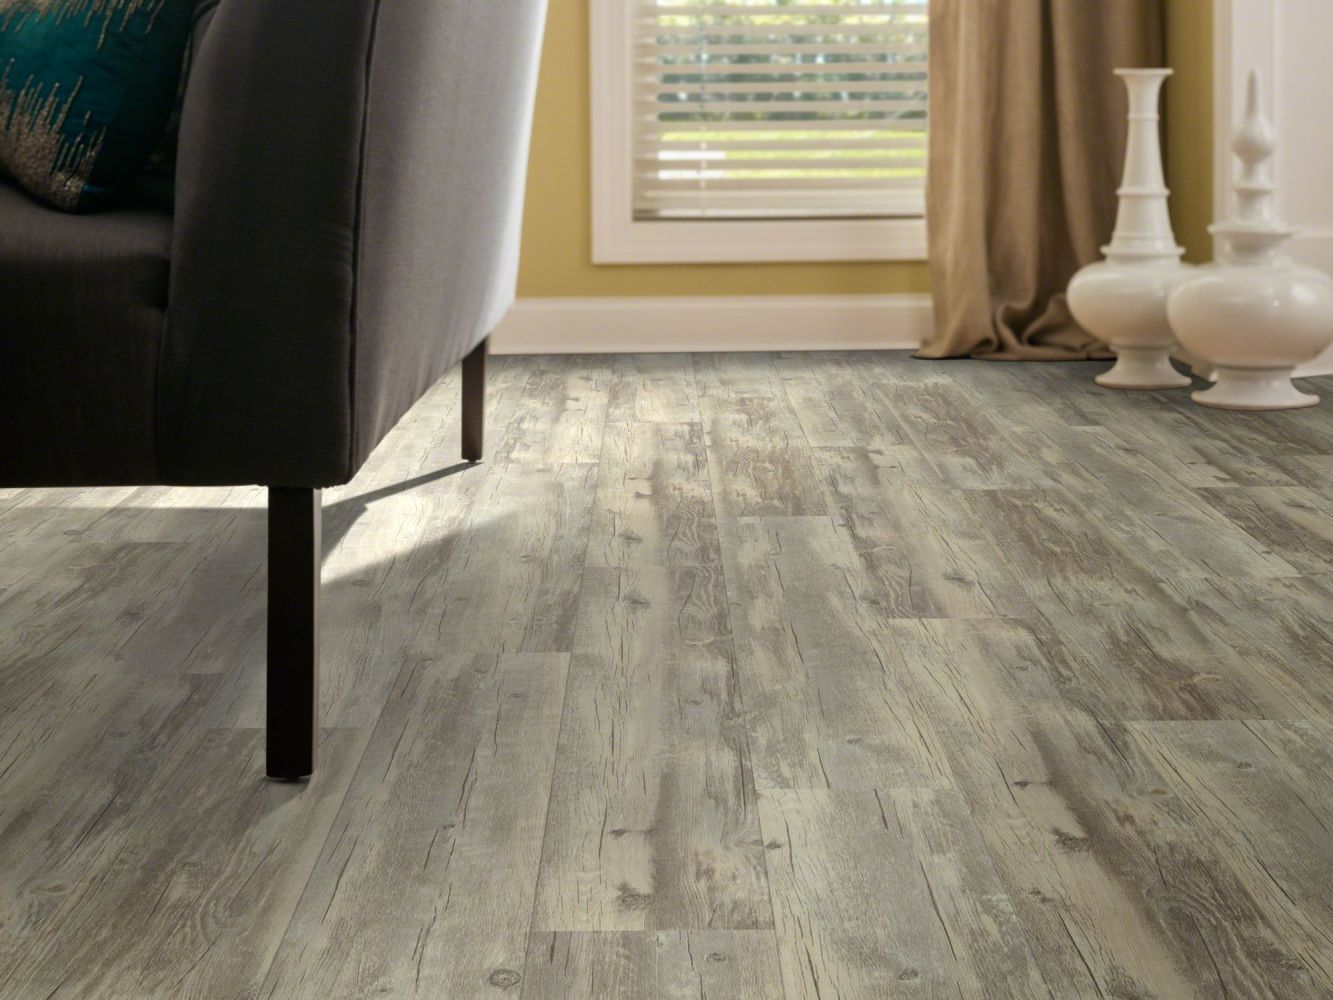 Shaw Floors Resilient Property Solutions Optimum 512c Plus Wheat Oak 00507_VE210